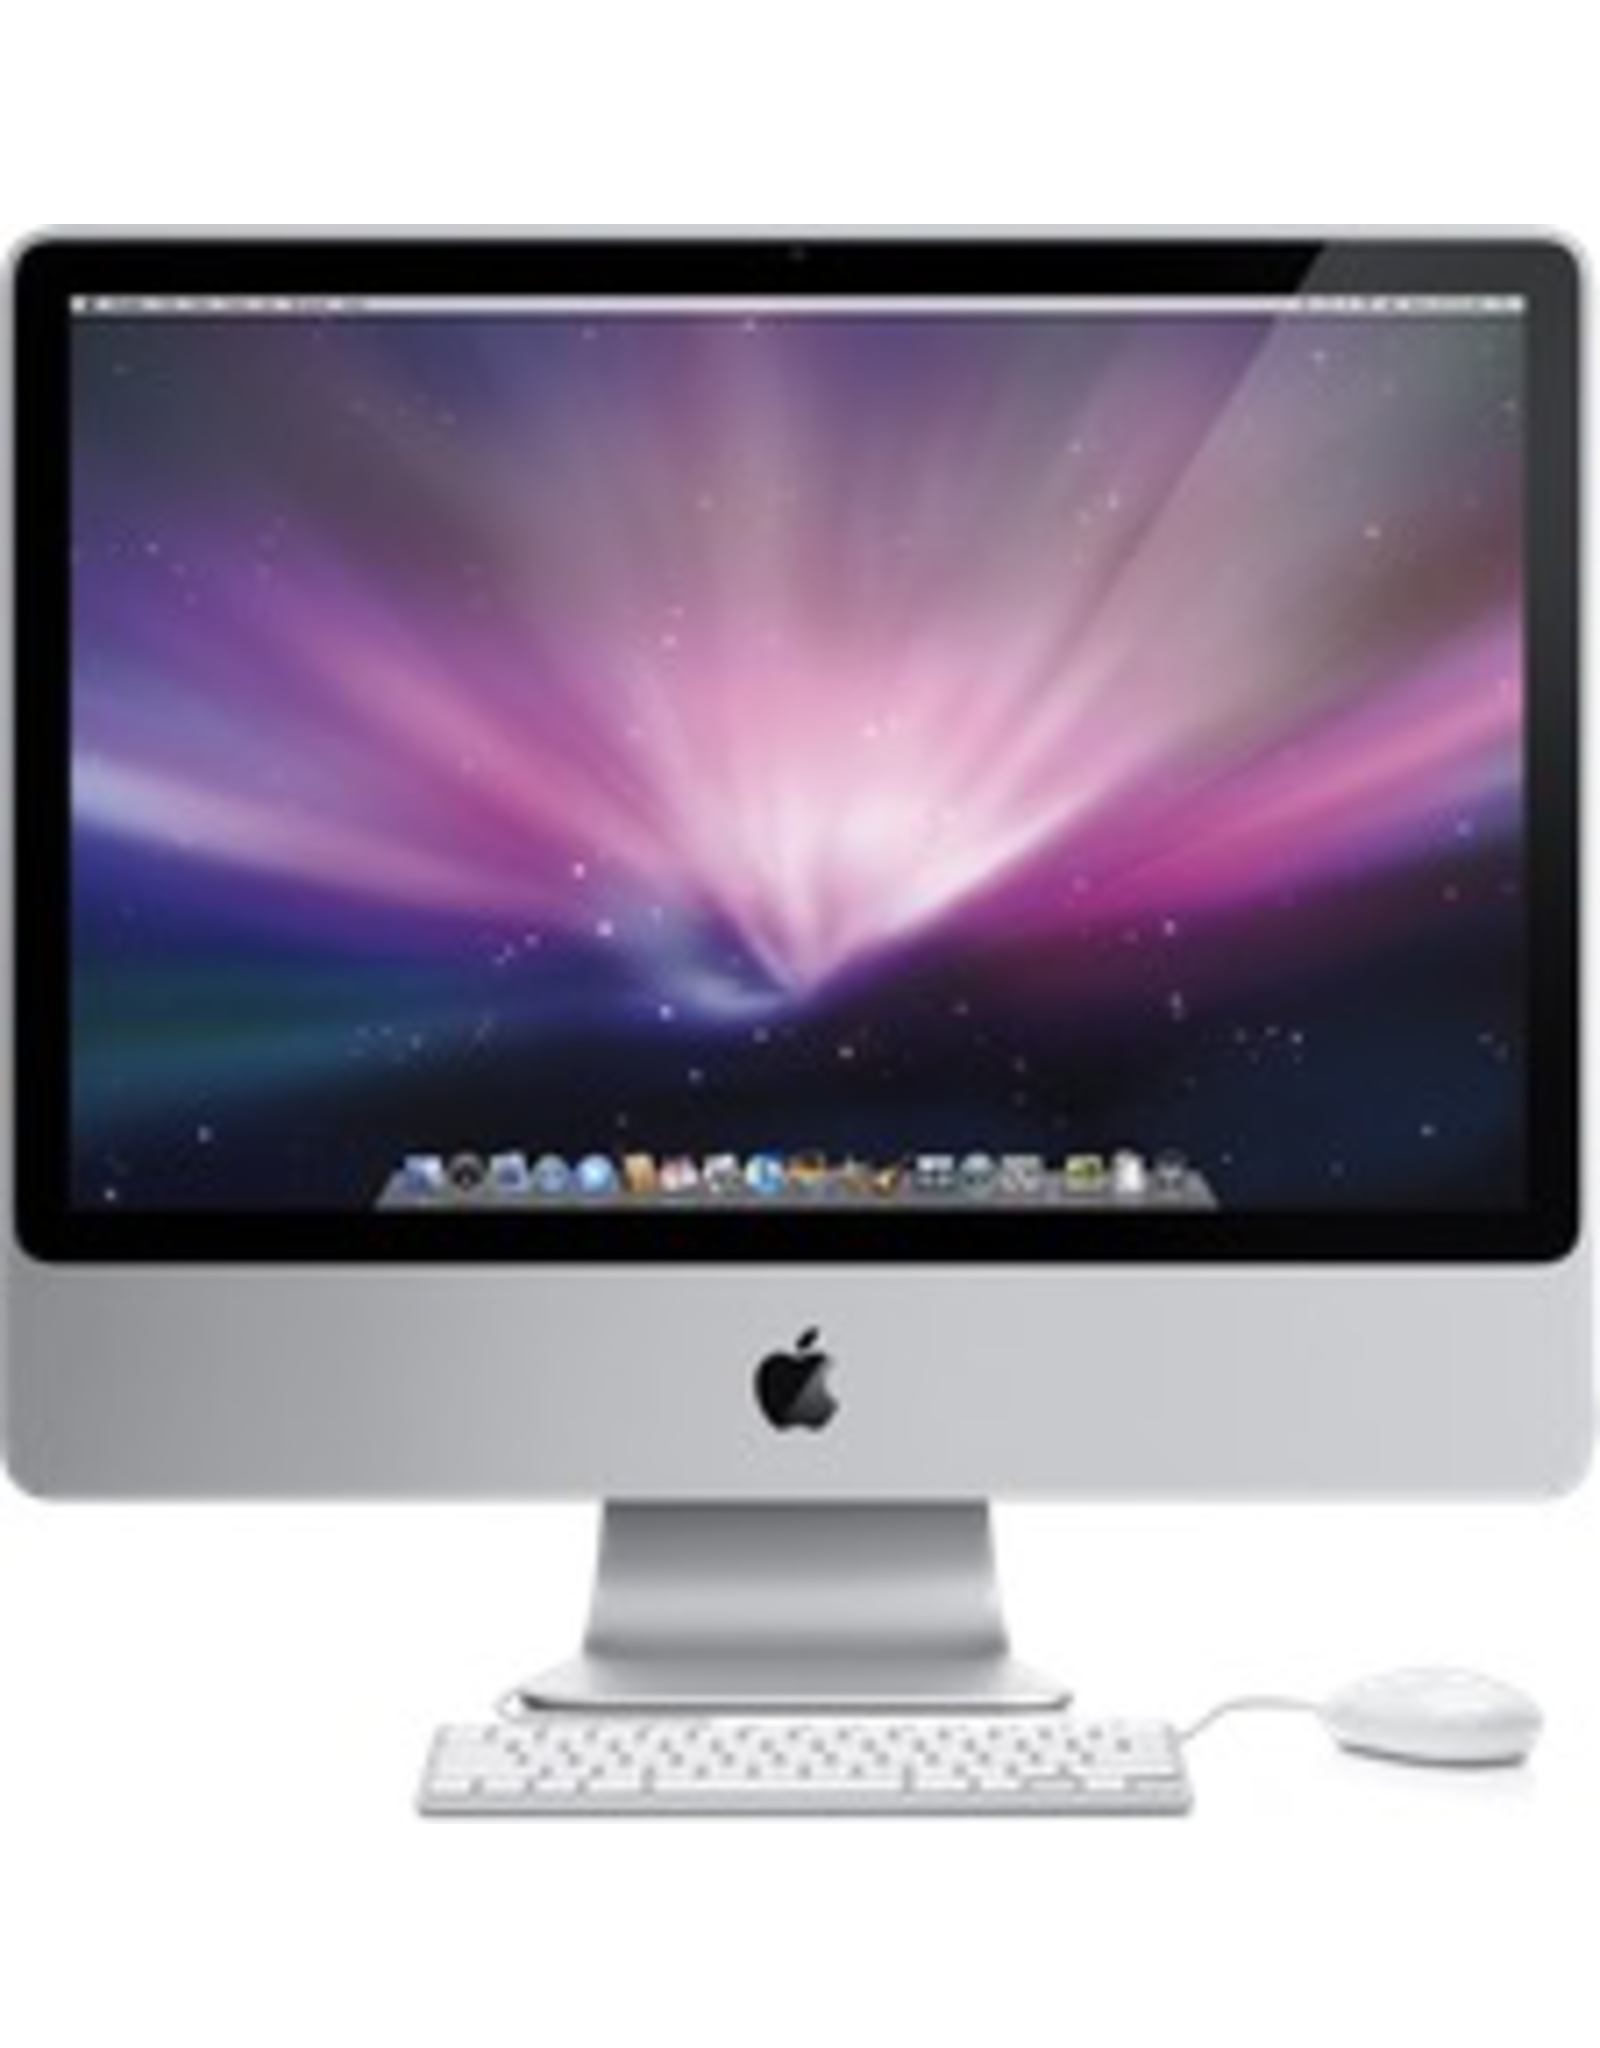 Apple iMac (20-inch Early 2008) / Intel Core 2 Duo 2.66 GHz / 320 GB HDD / 2GB RAM / 30 days exchange